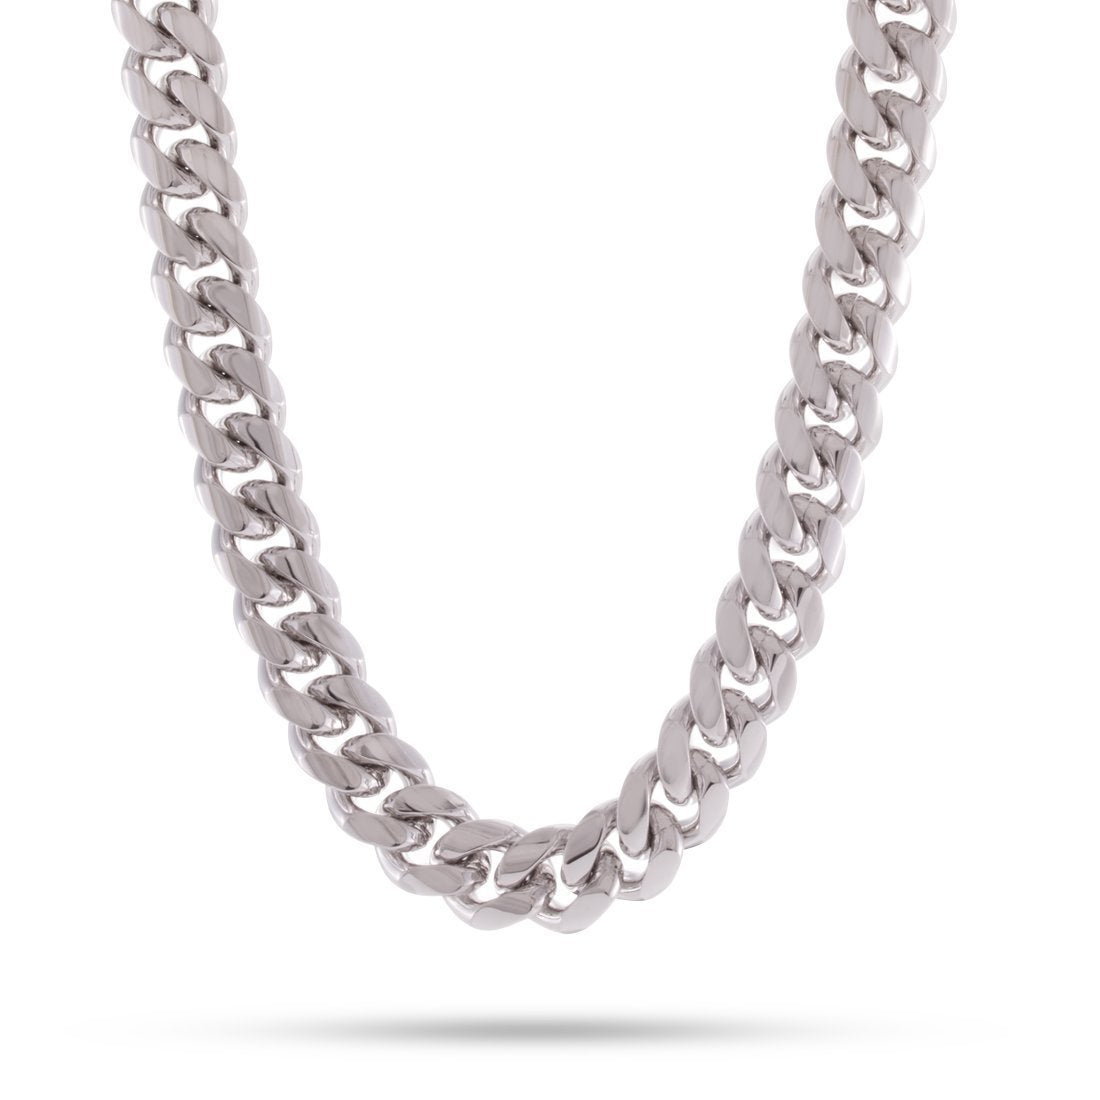 Stainless Steel Cuban Chain - Iced Clasp